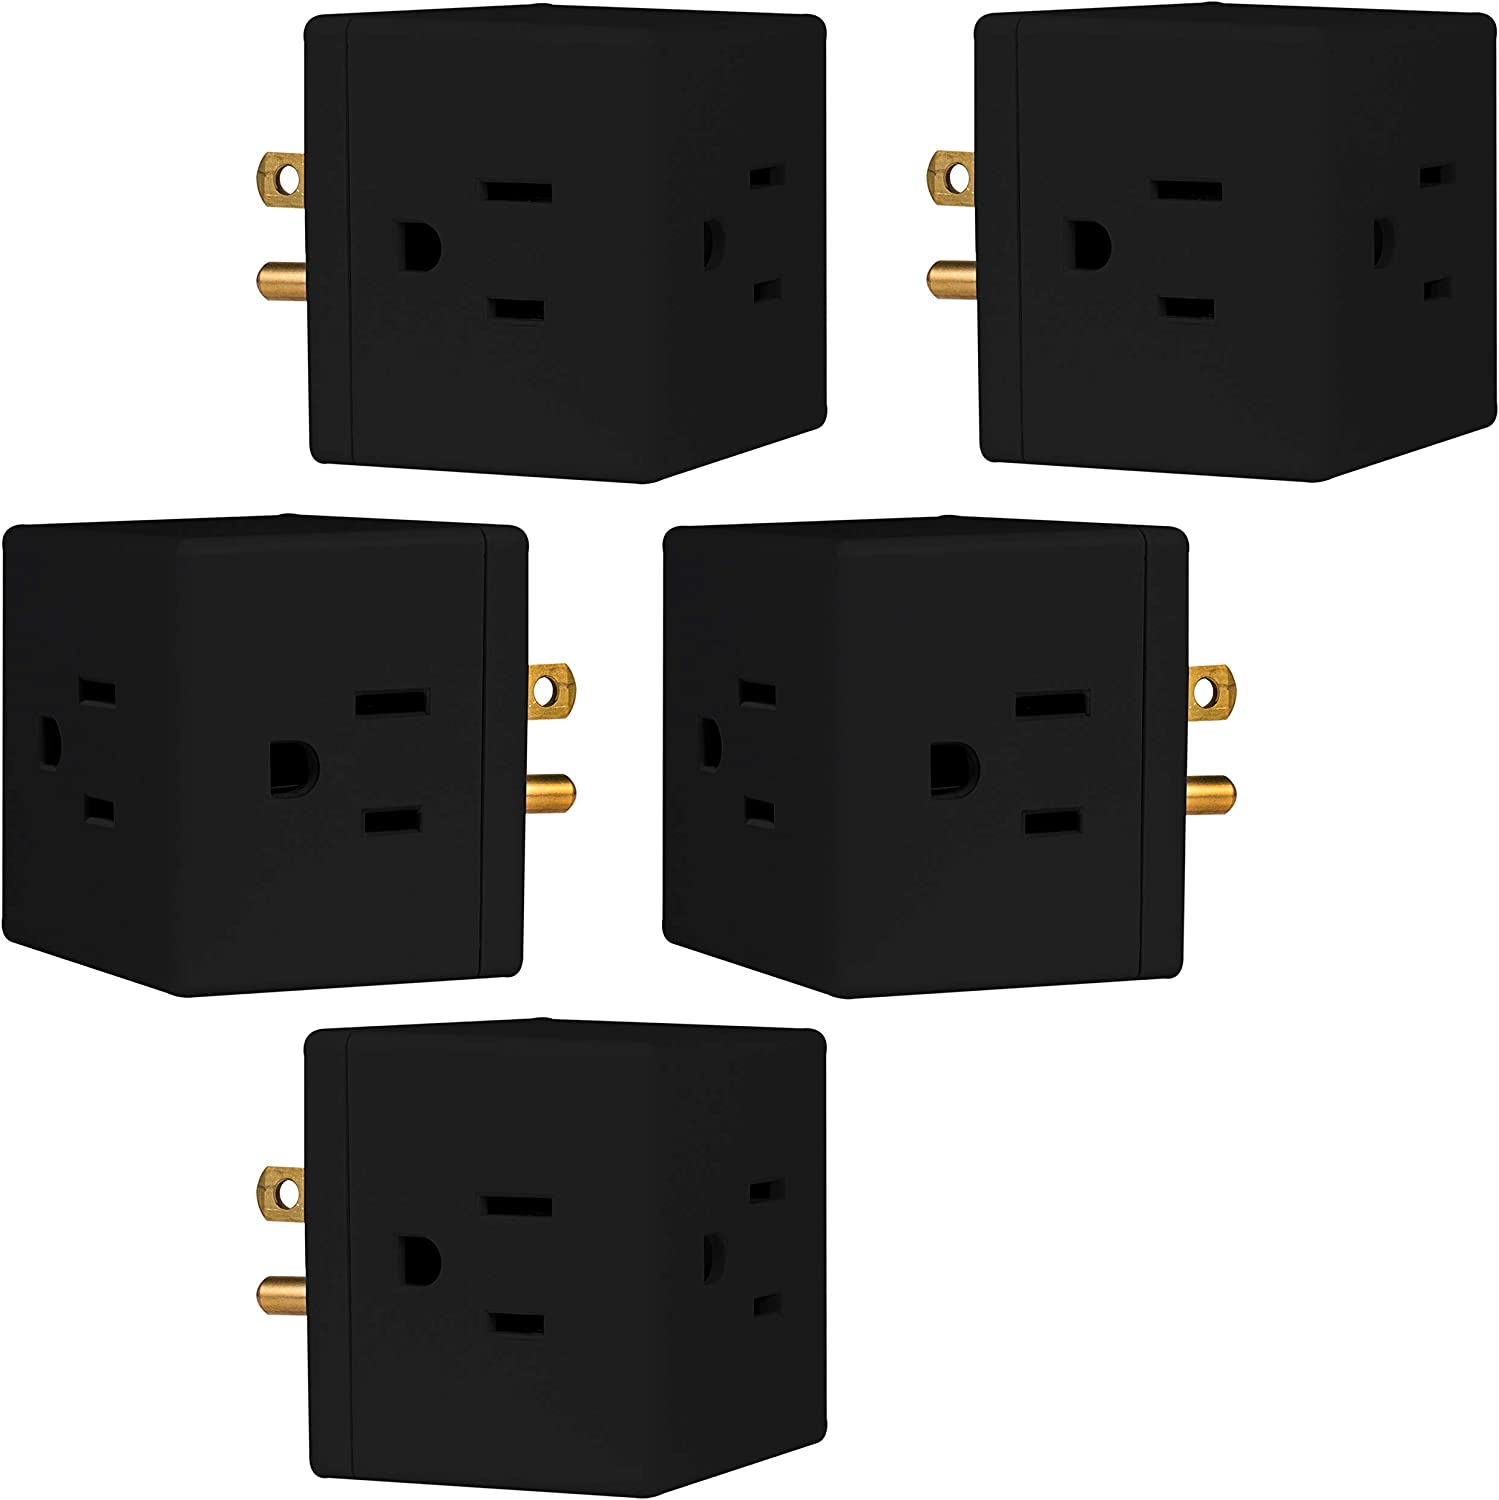 GE Outlet Wall Tap, 5 Pack, 3-Prong, Extra-Wide Adapter Spaced, Grounded, Easy Access Design, Indoor, Black, 47039